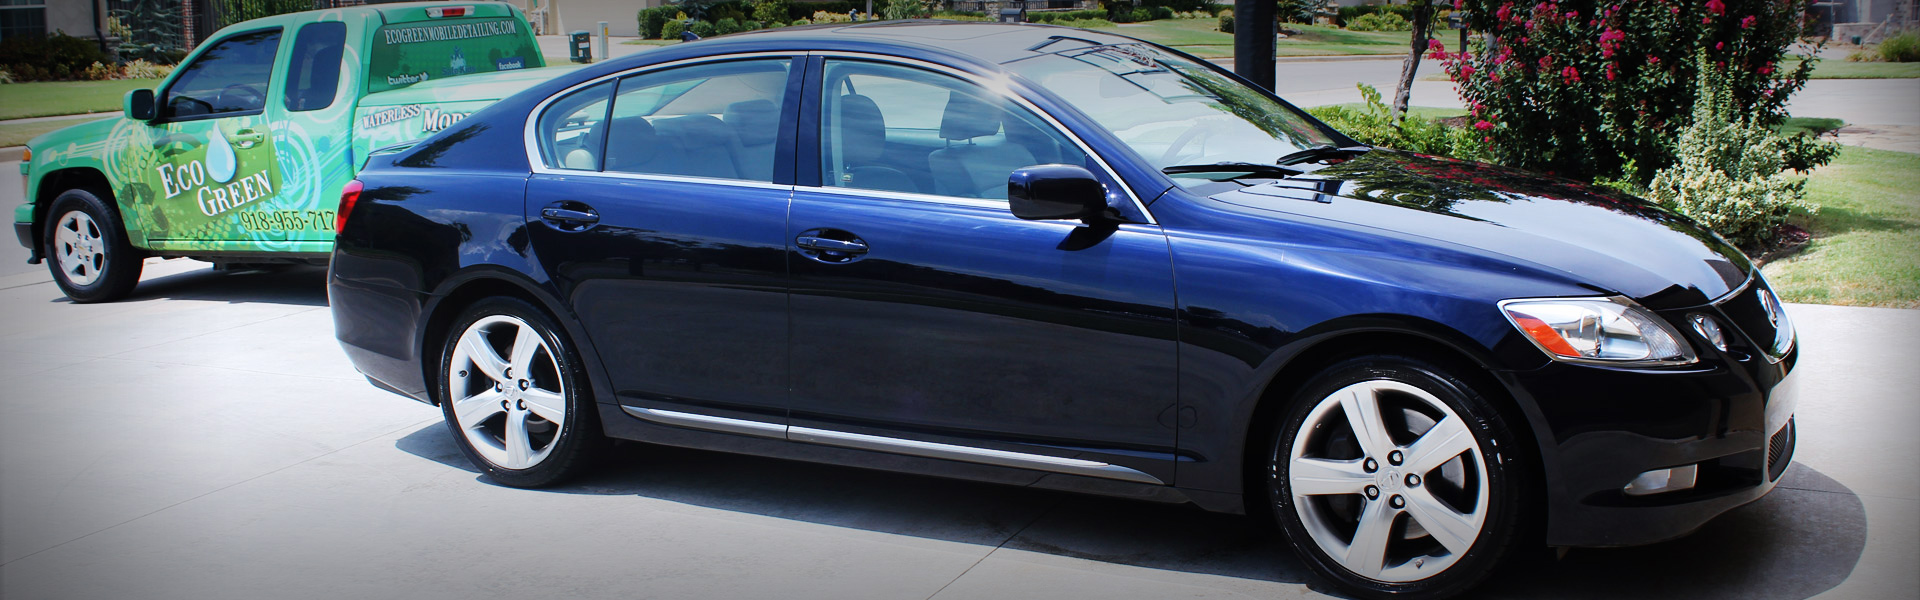 Picture of a Lexus GS350 in EcoGreen Contact Banner